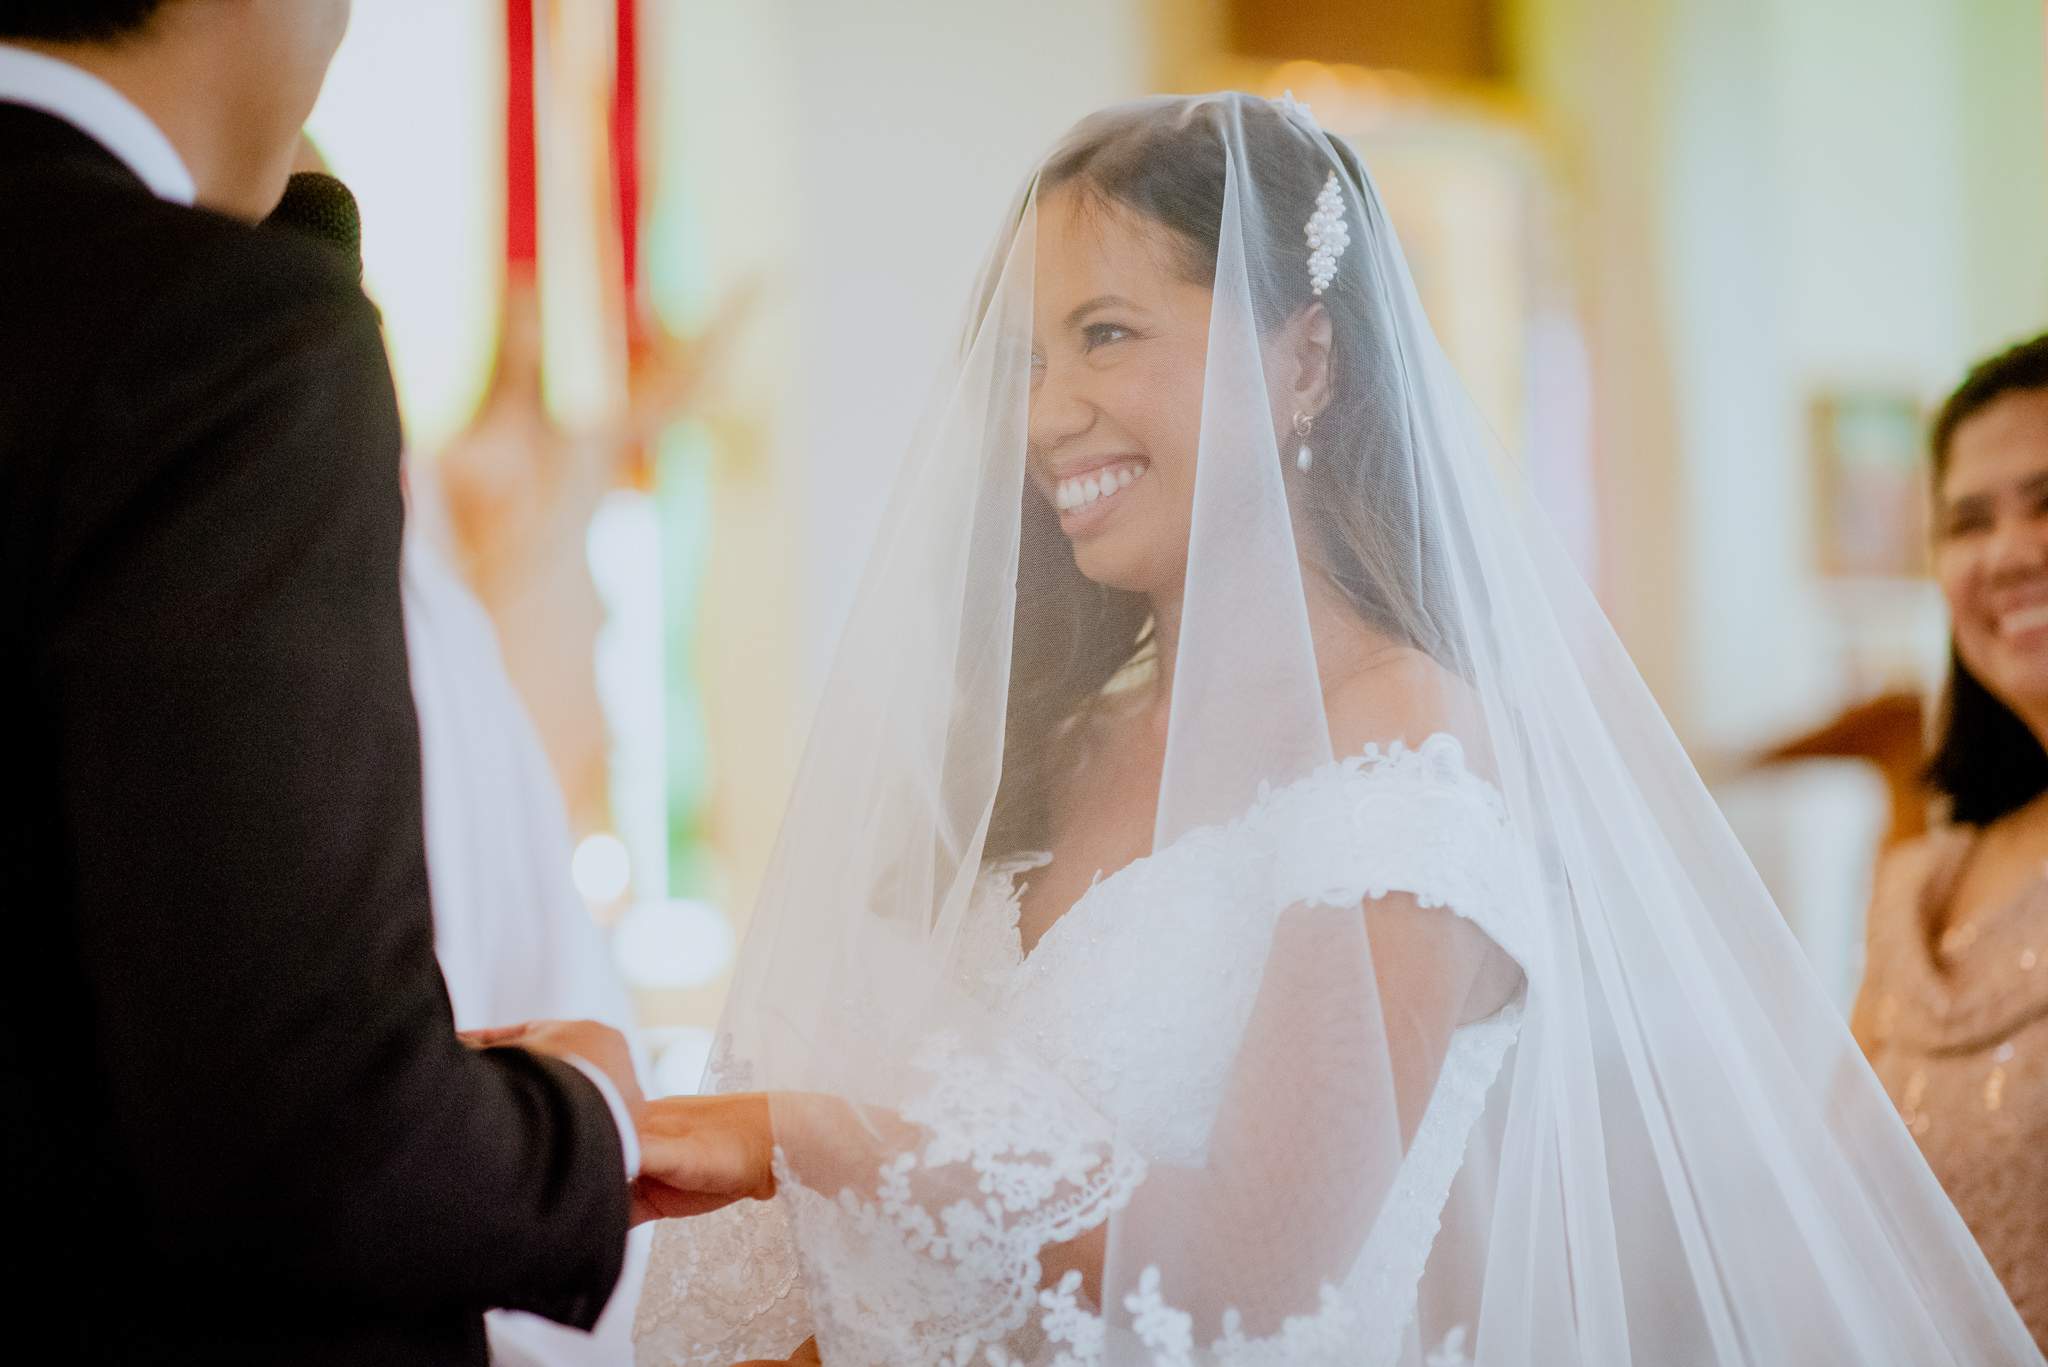 Bride laughs as she holds hands with her groom